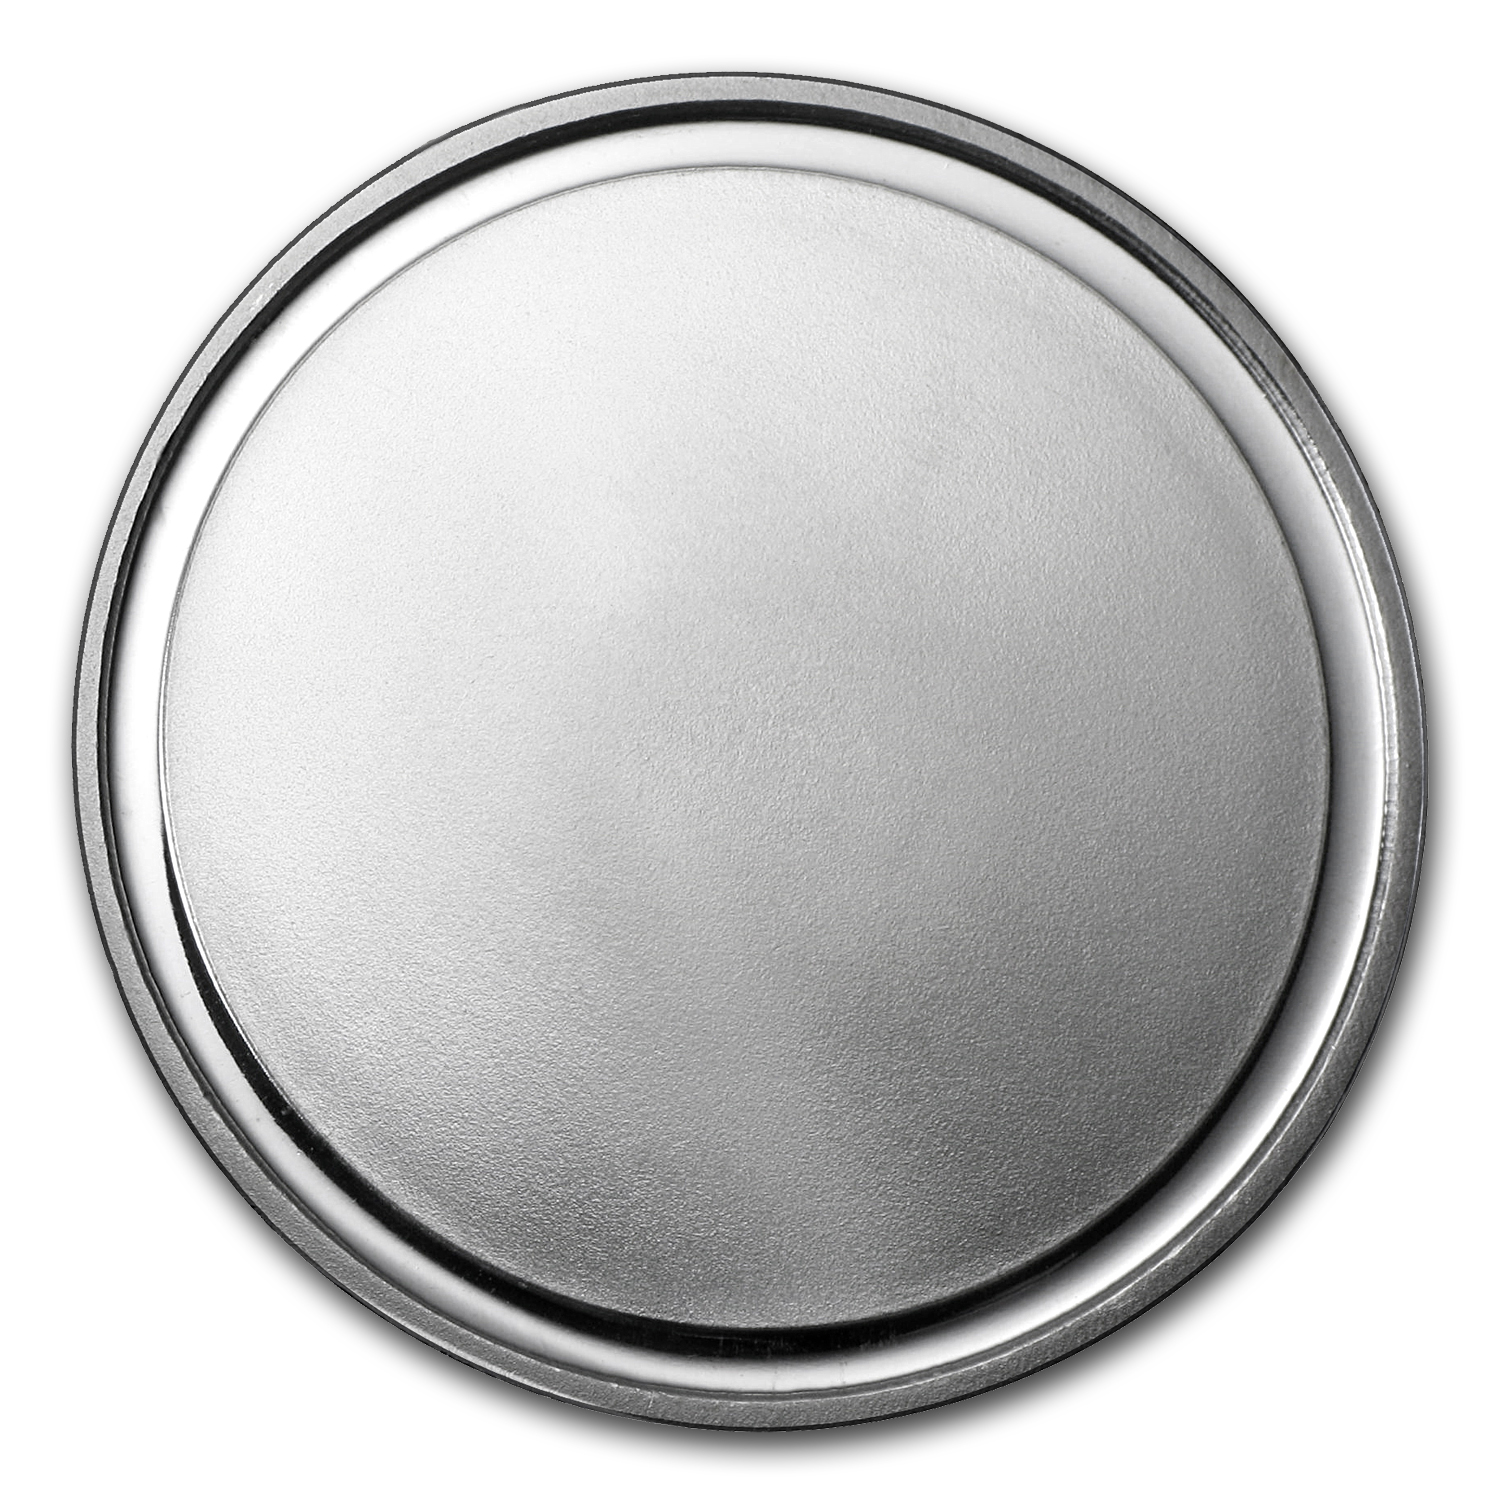 Png transparent images pluspng. Coins clipart blank coin